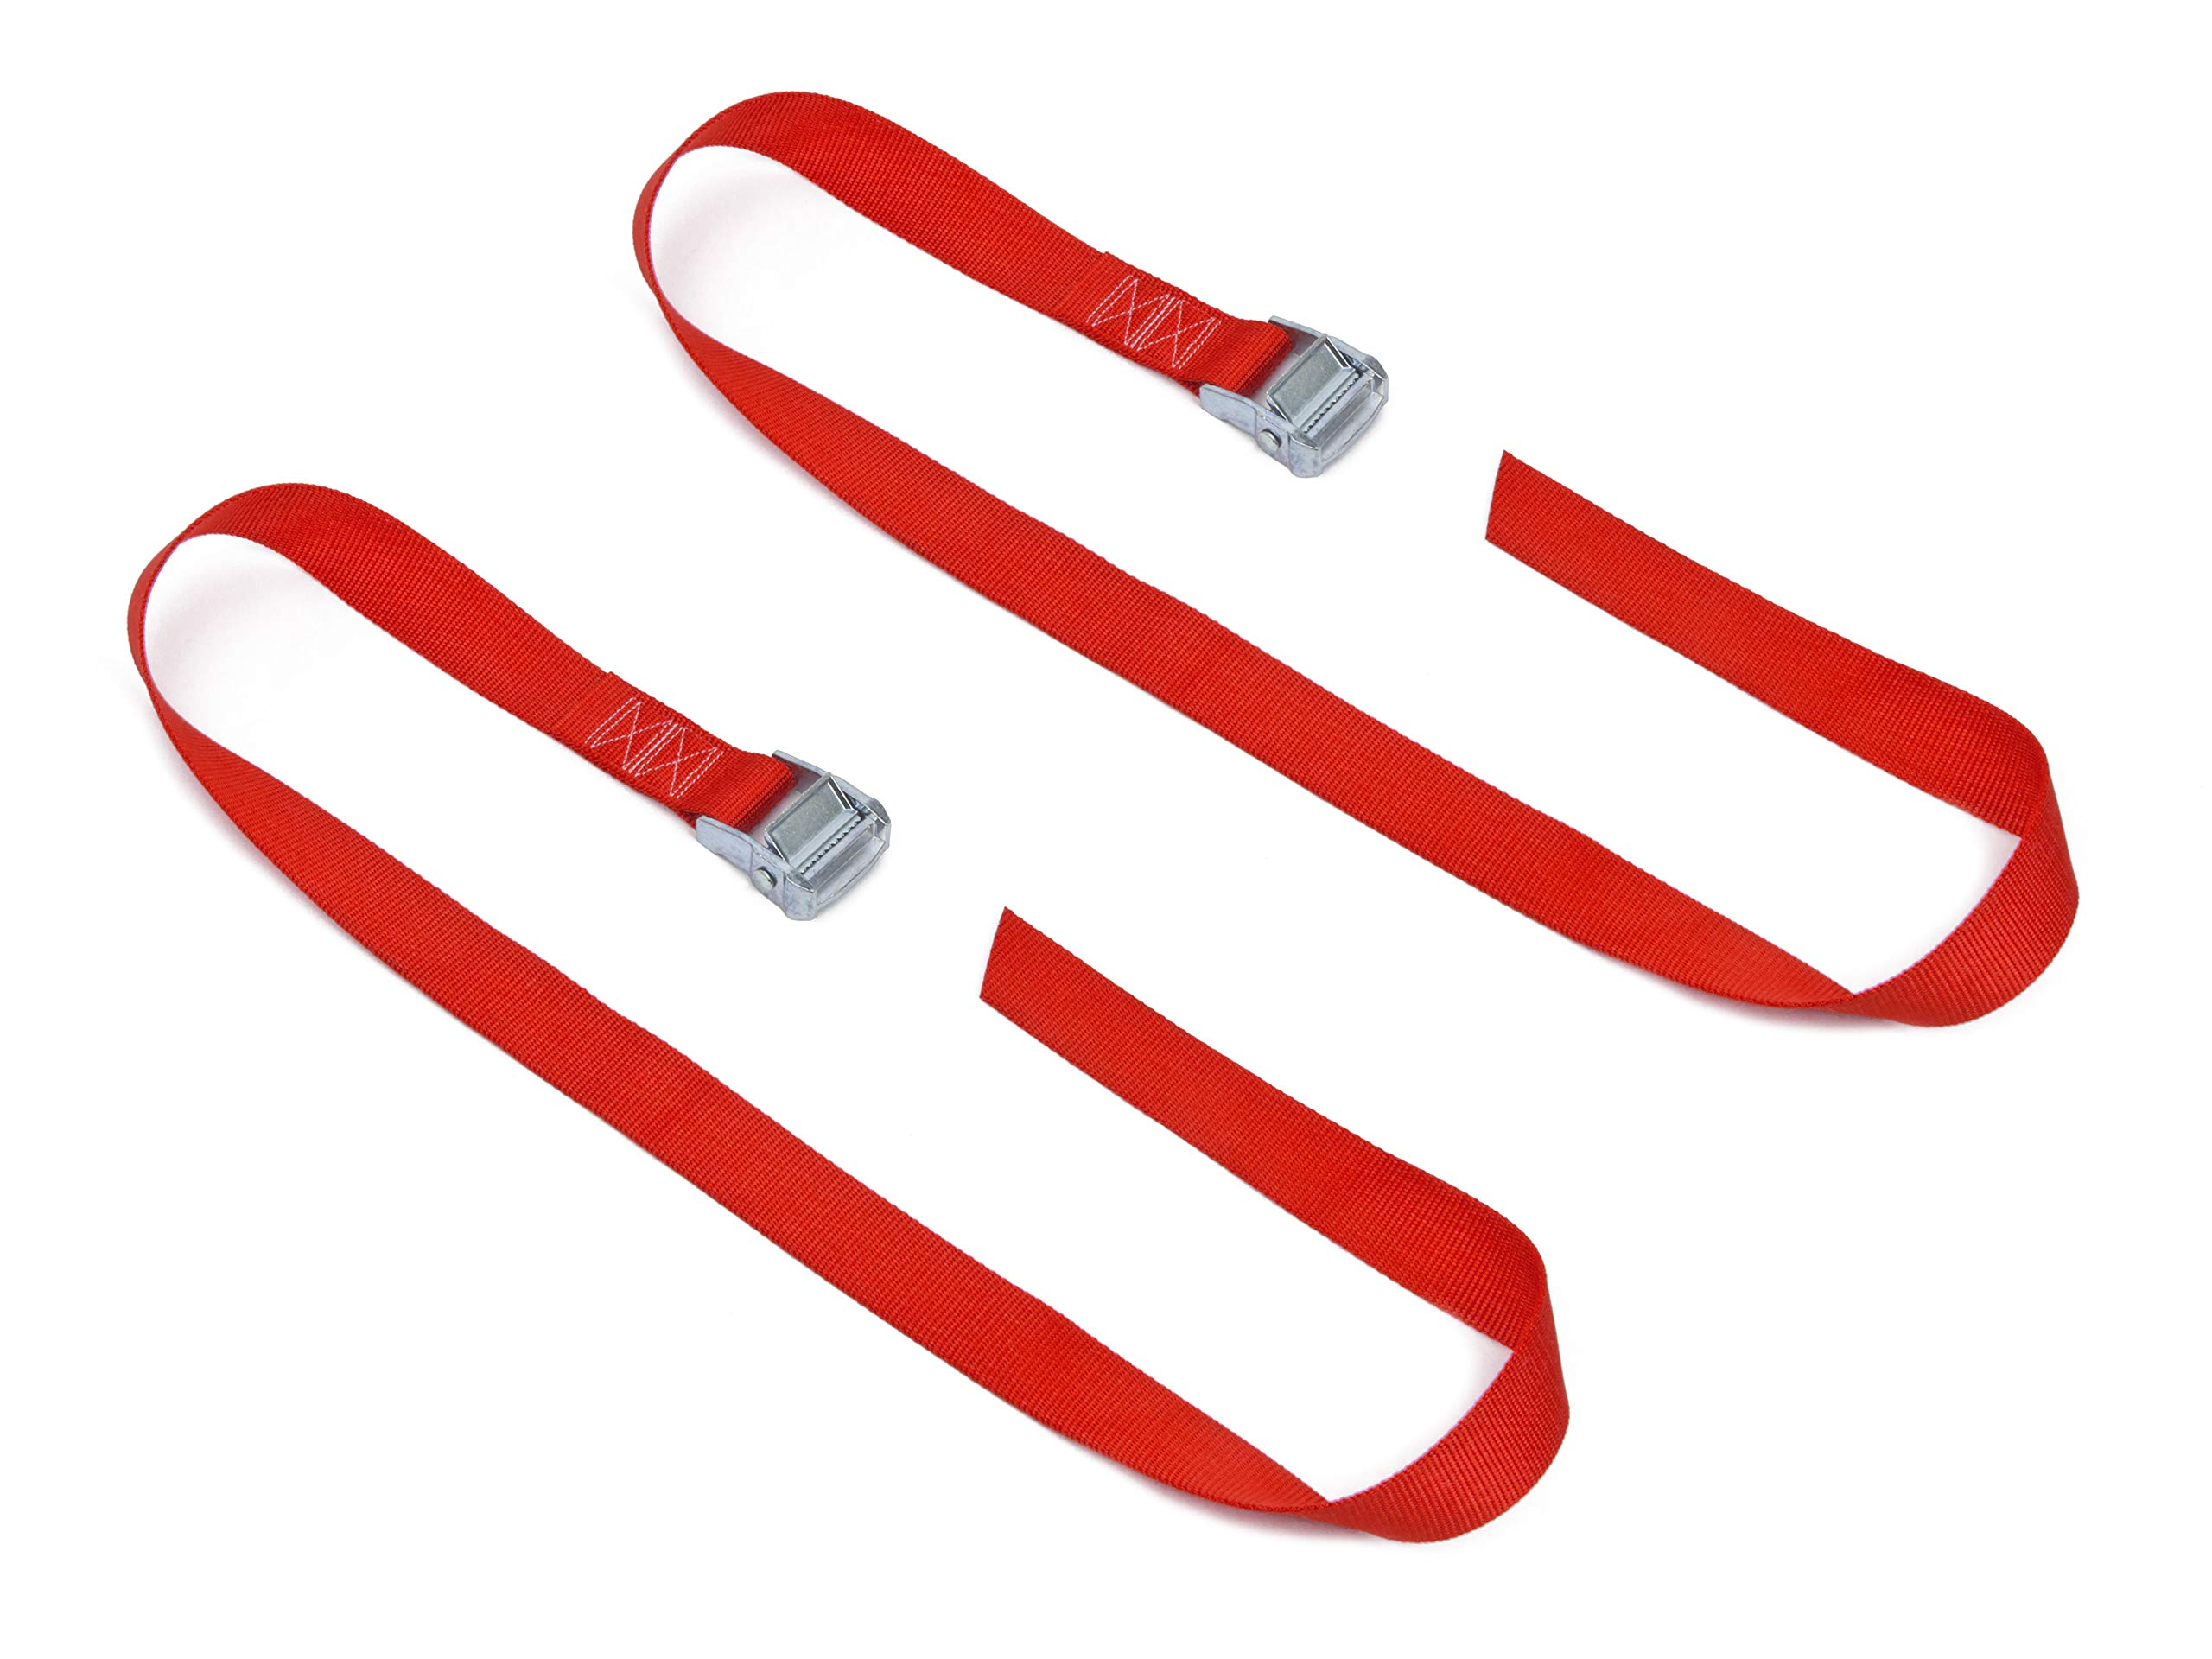 1½'' x 4ft PowerTye Made in USA Heavy-Duty Lashing Strap with Heavy-Duty Buckle, Red, 2-Pack by Powertye